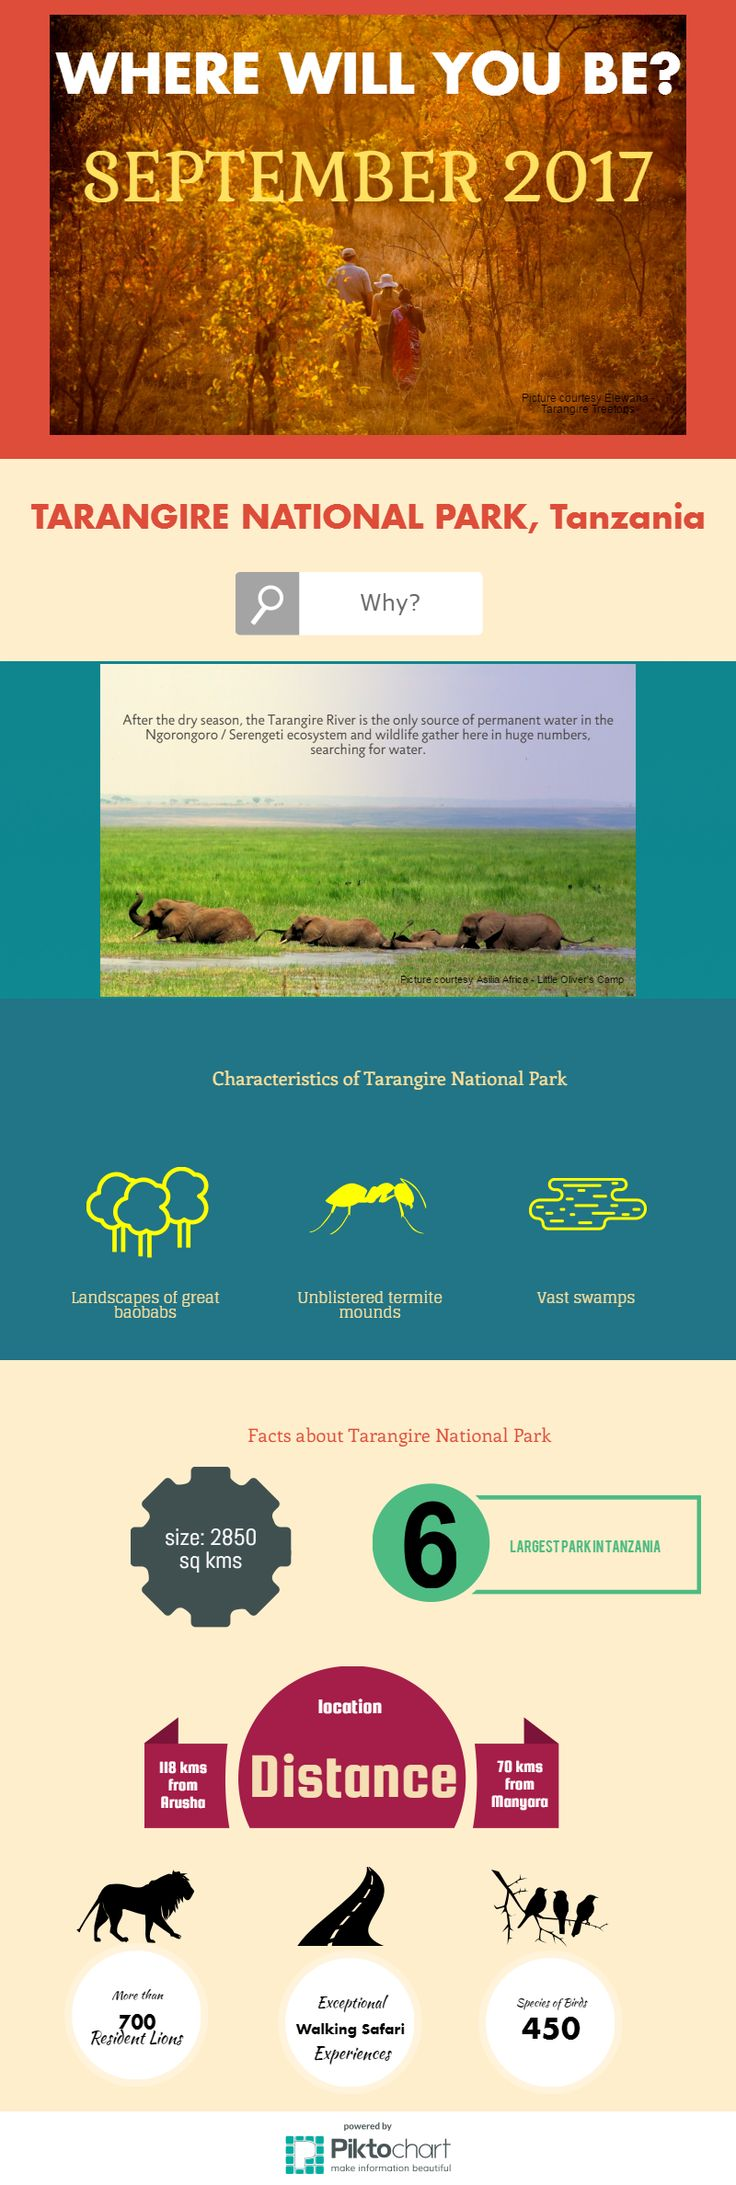 Where's the best place to go on safari in September? Tarangire National Park, Tanzania. Find out why